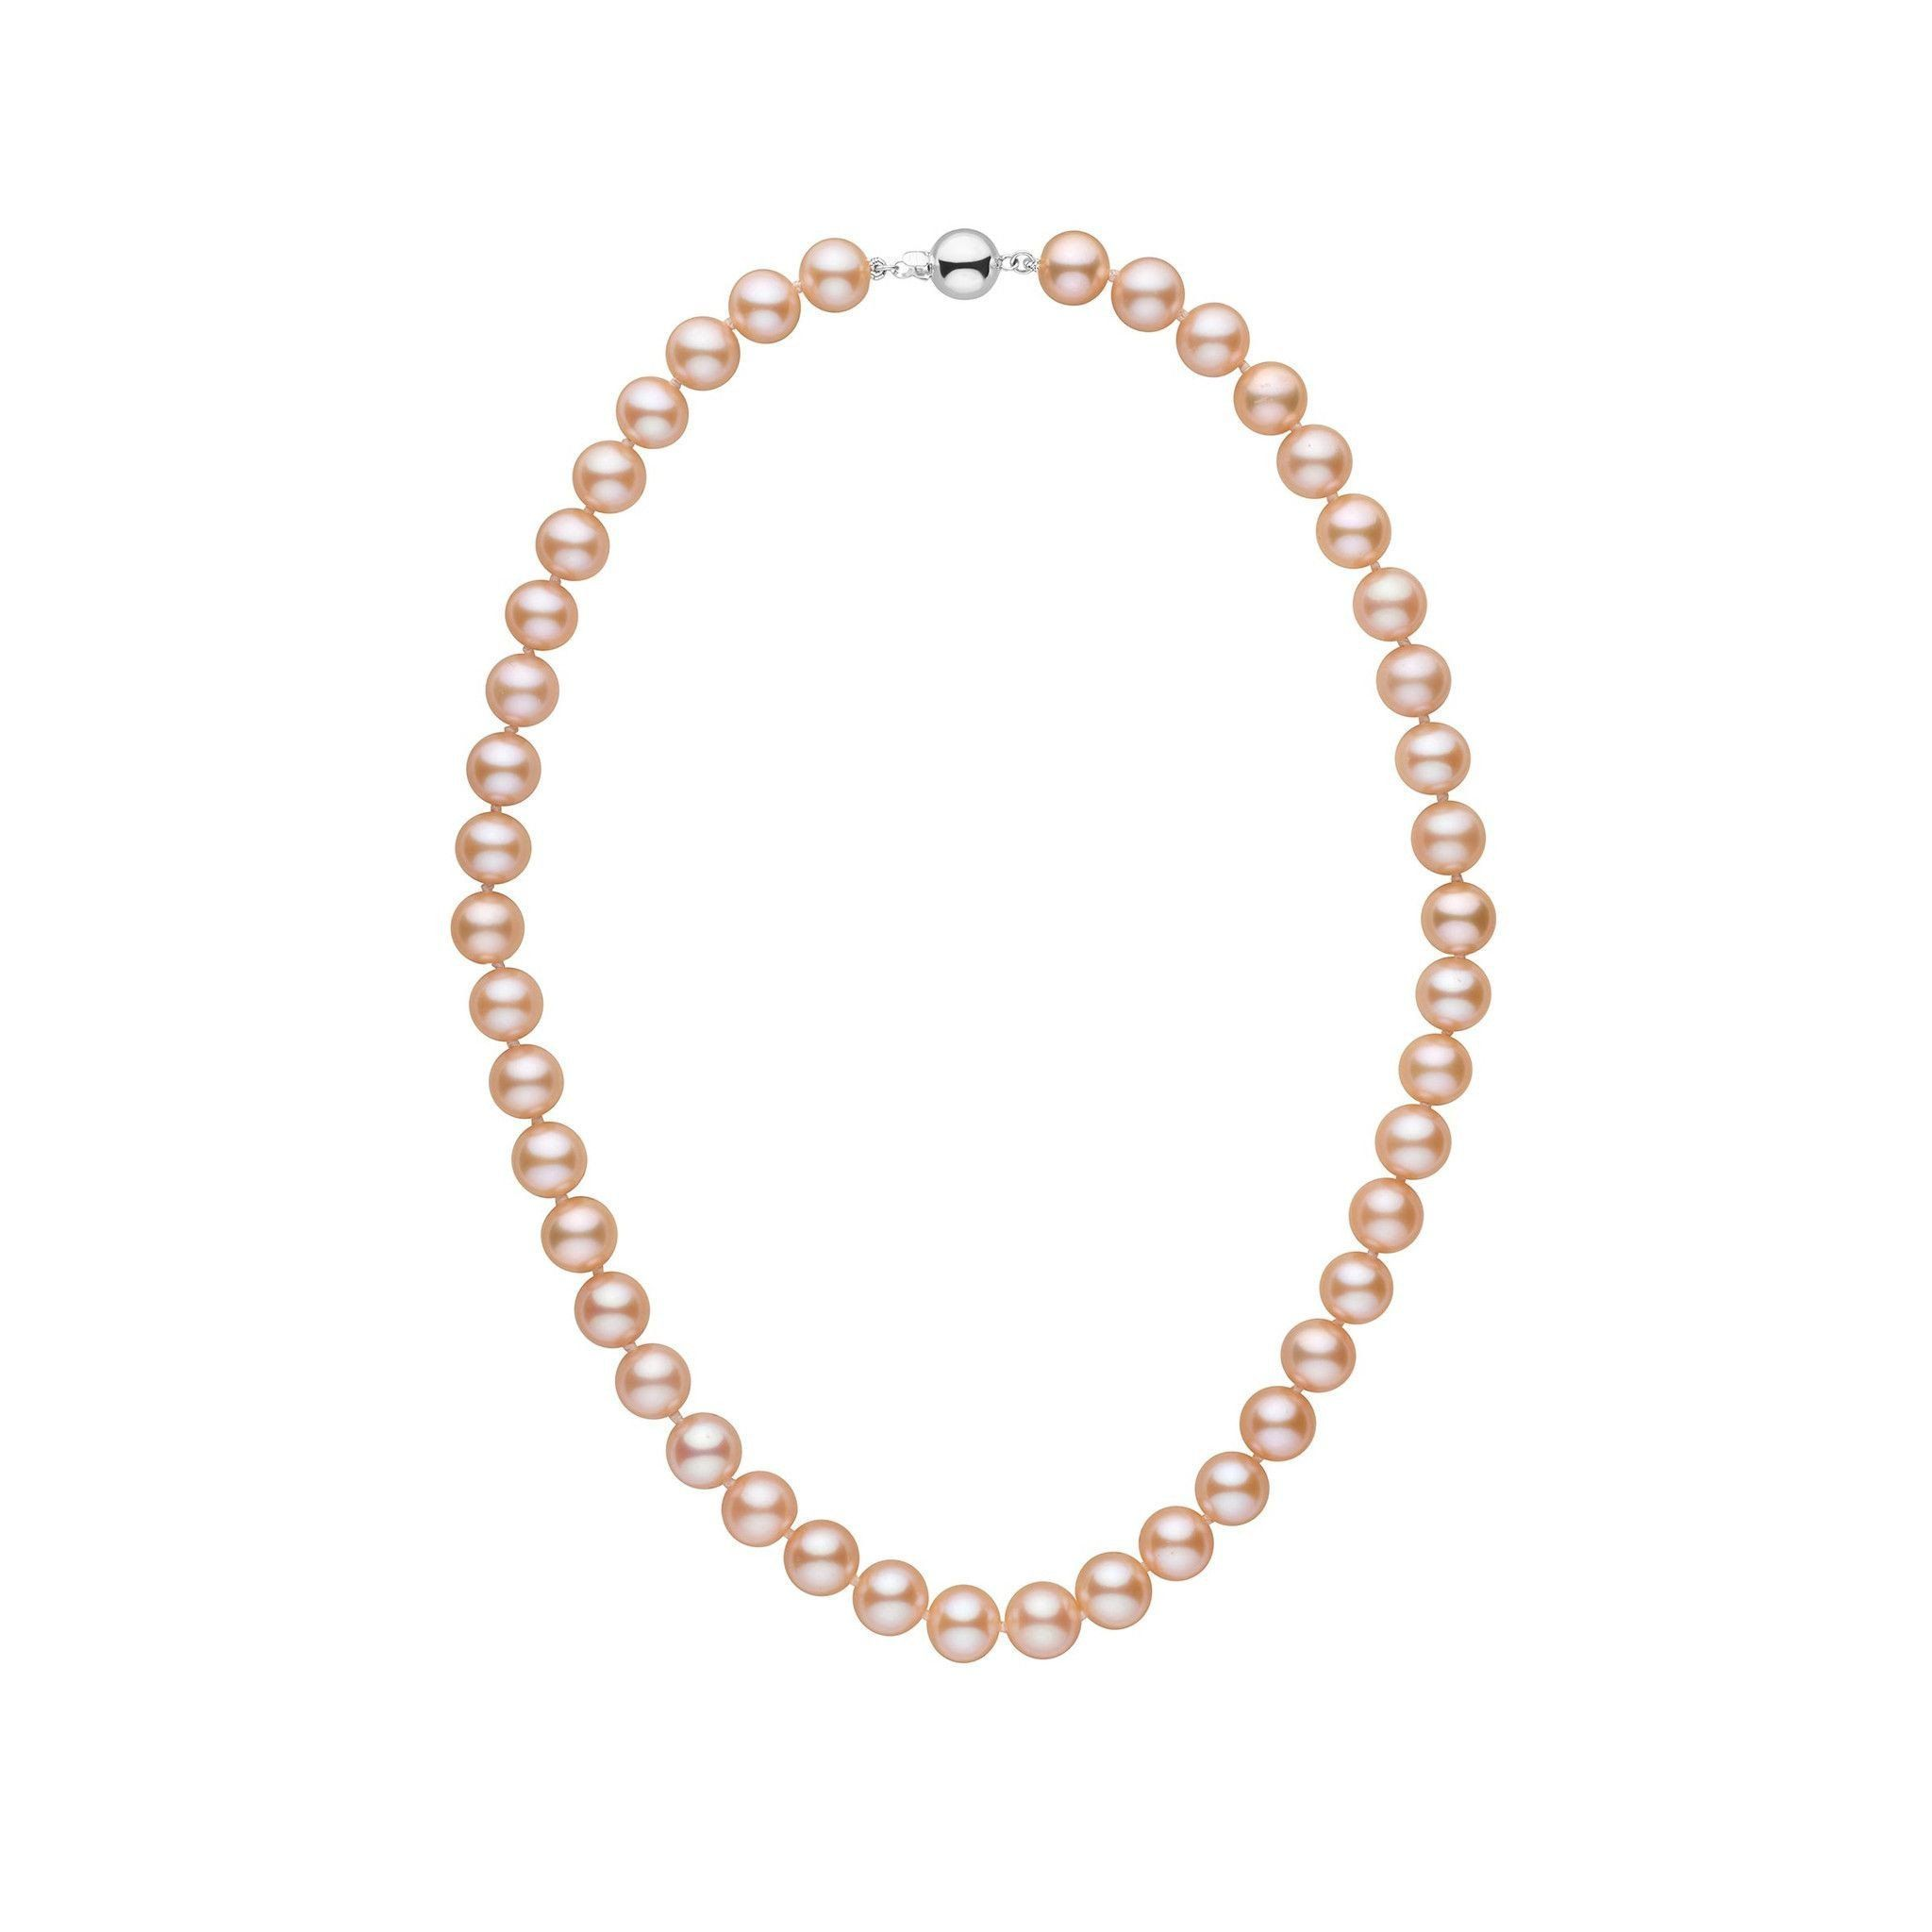 8.5-9.0 mm 16 Inch AAA Pink to Peach Freshwater Pearl Necklace